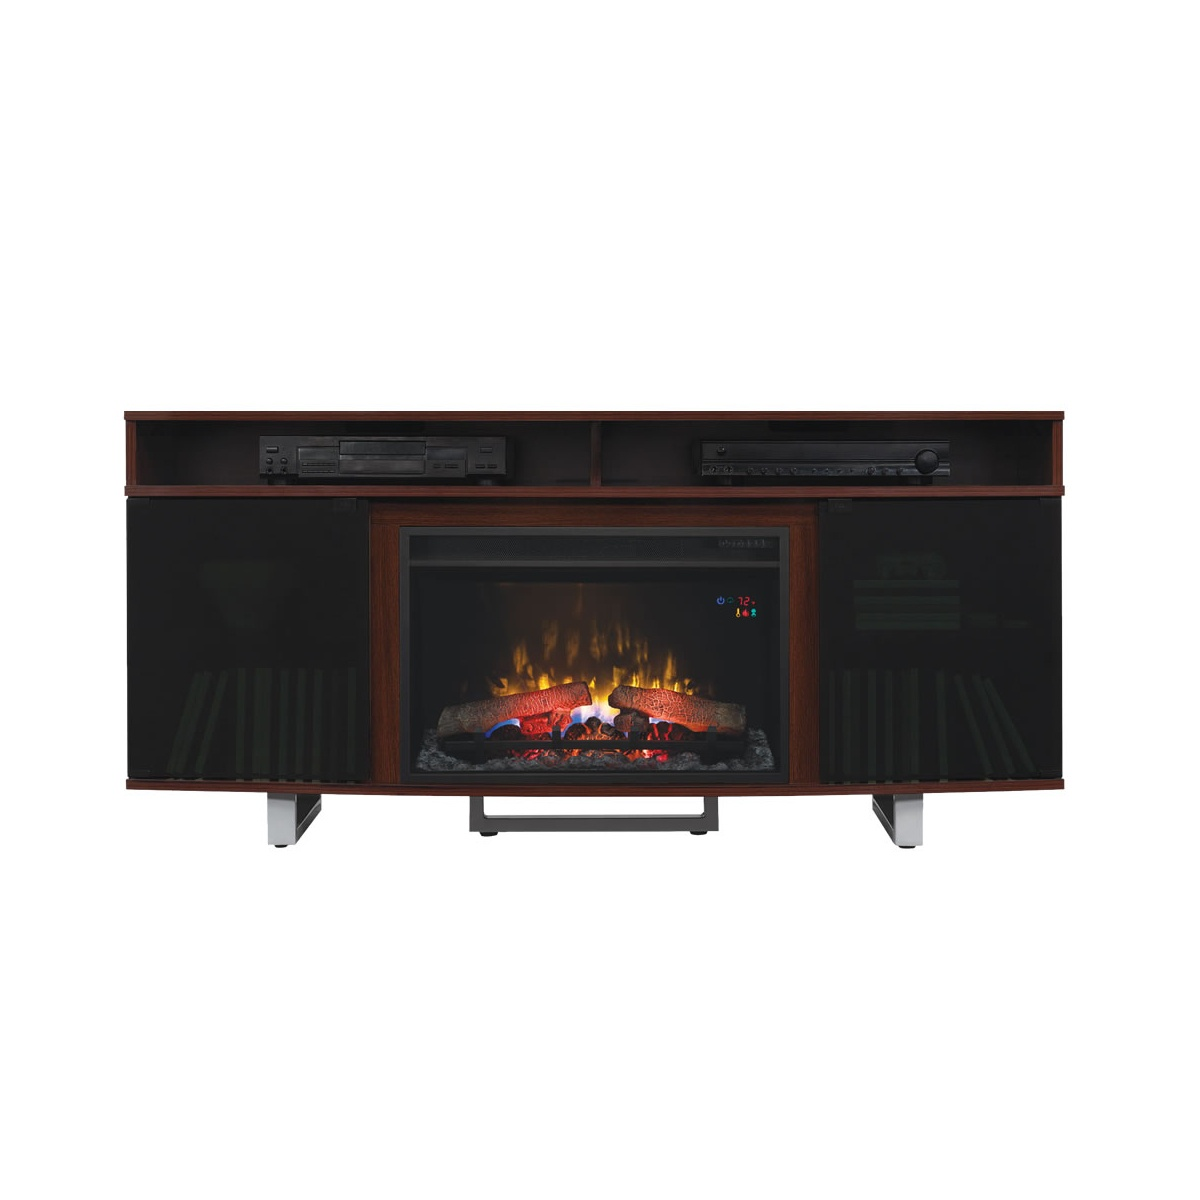 high gloss cherry finish media console with traditional logs electric fireplace insert